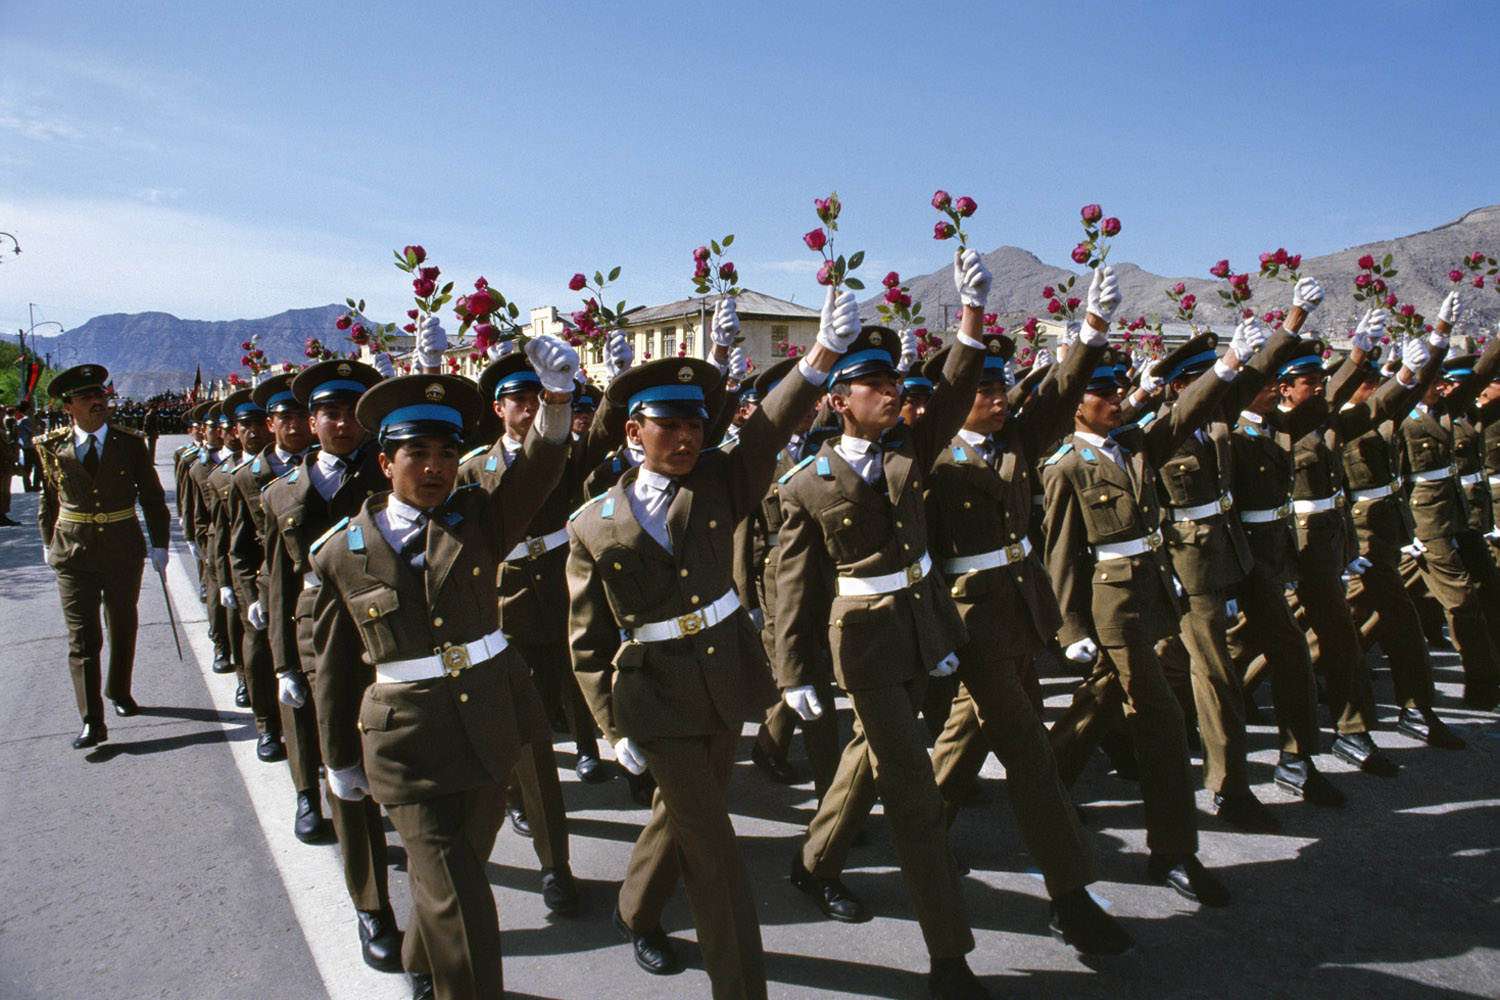 Afghan military cadets march in Kabul during the celebration of the 1974 Saur Revolution, the Afghan Communist Party's political takeover. February, 1989